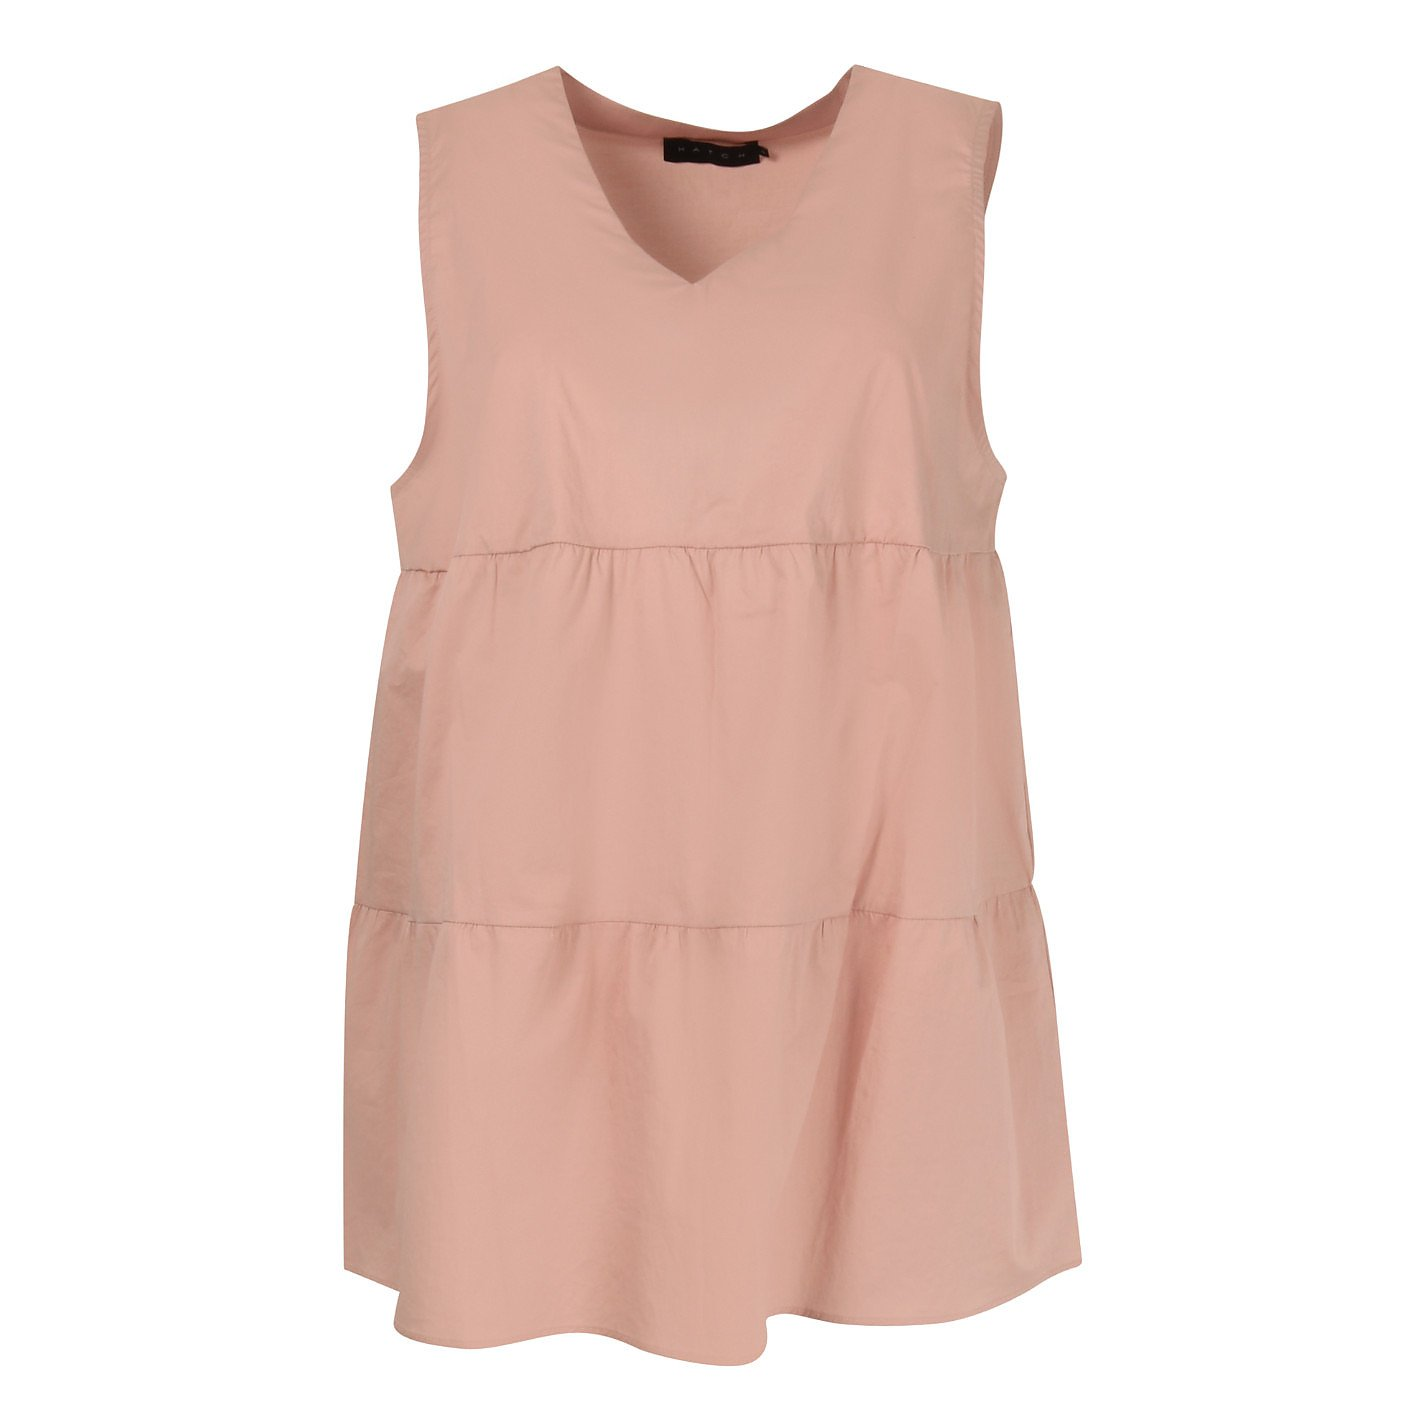 Hatch Sleeveless Tiered Top